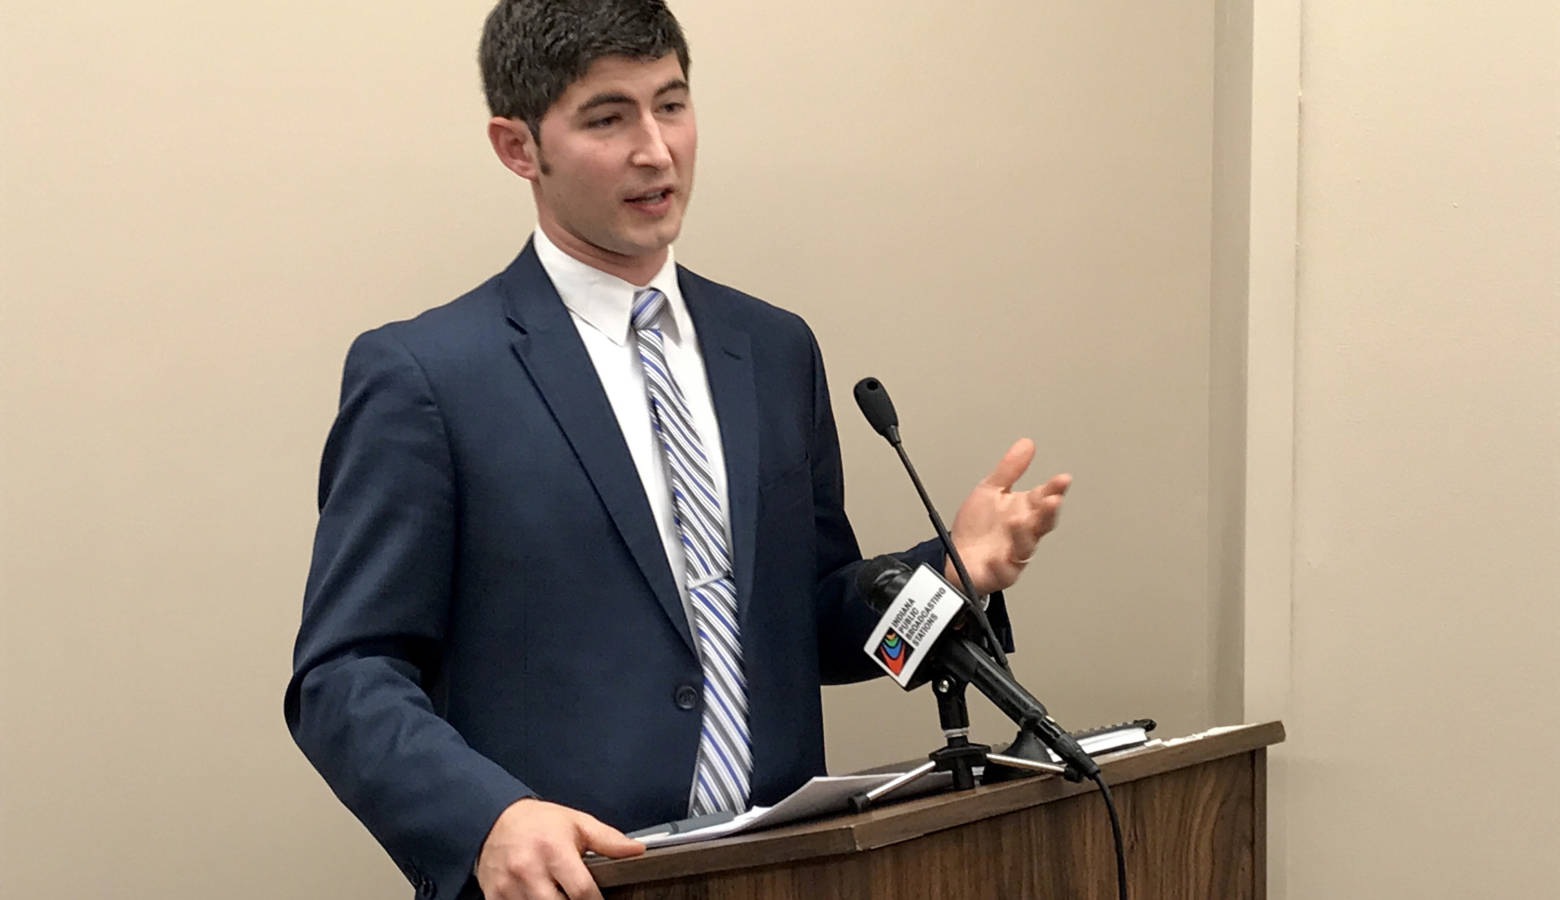 Rep. Tim Wesco (R-Osceola) discusses his bill dealing with education benefits for active duty military and veterans. (Brandon Smith/IPB News)